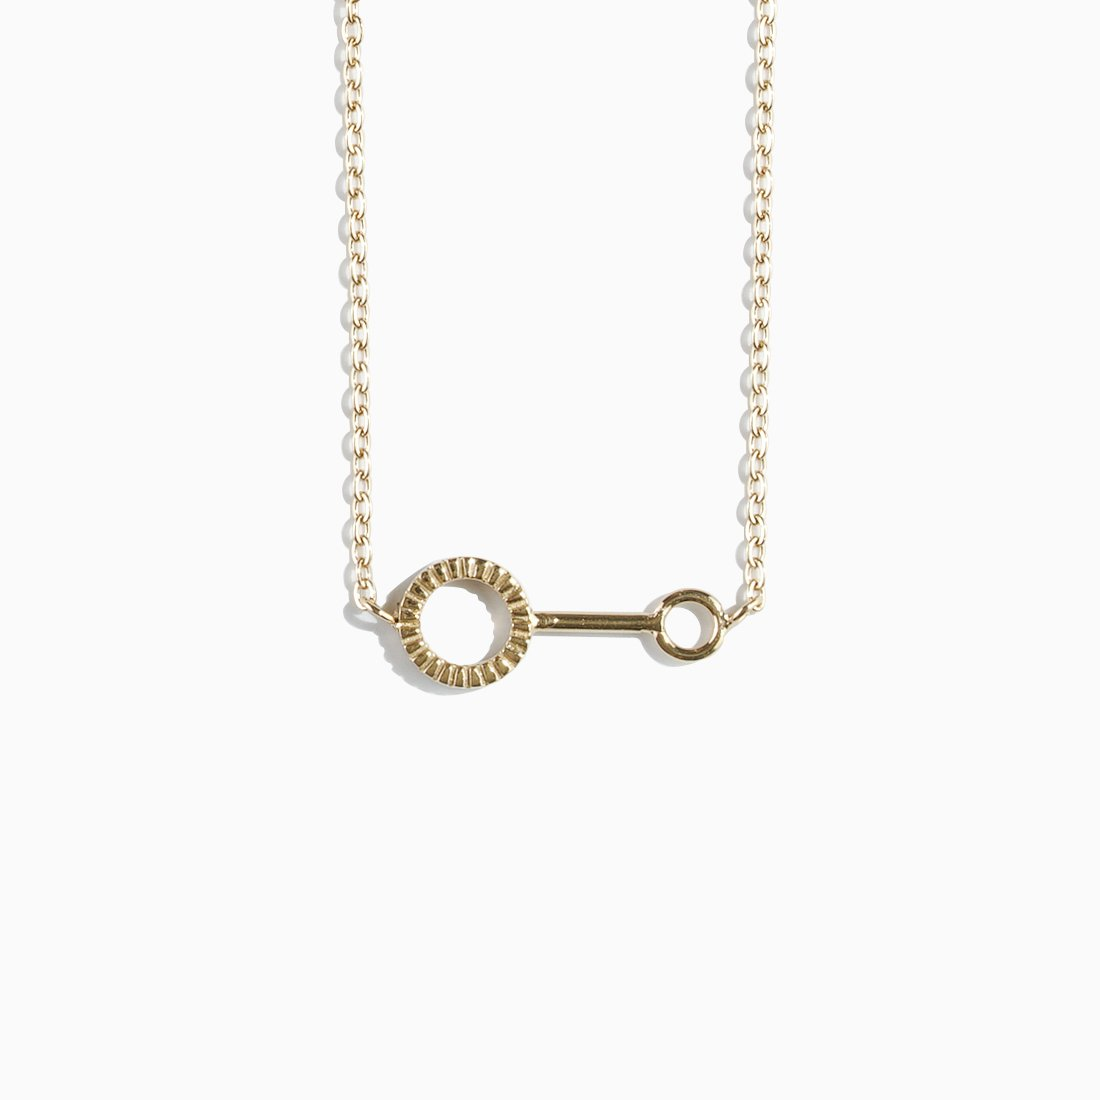 'Bubble Wand' Necklace - Gold